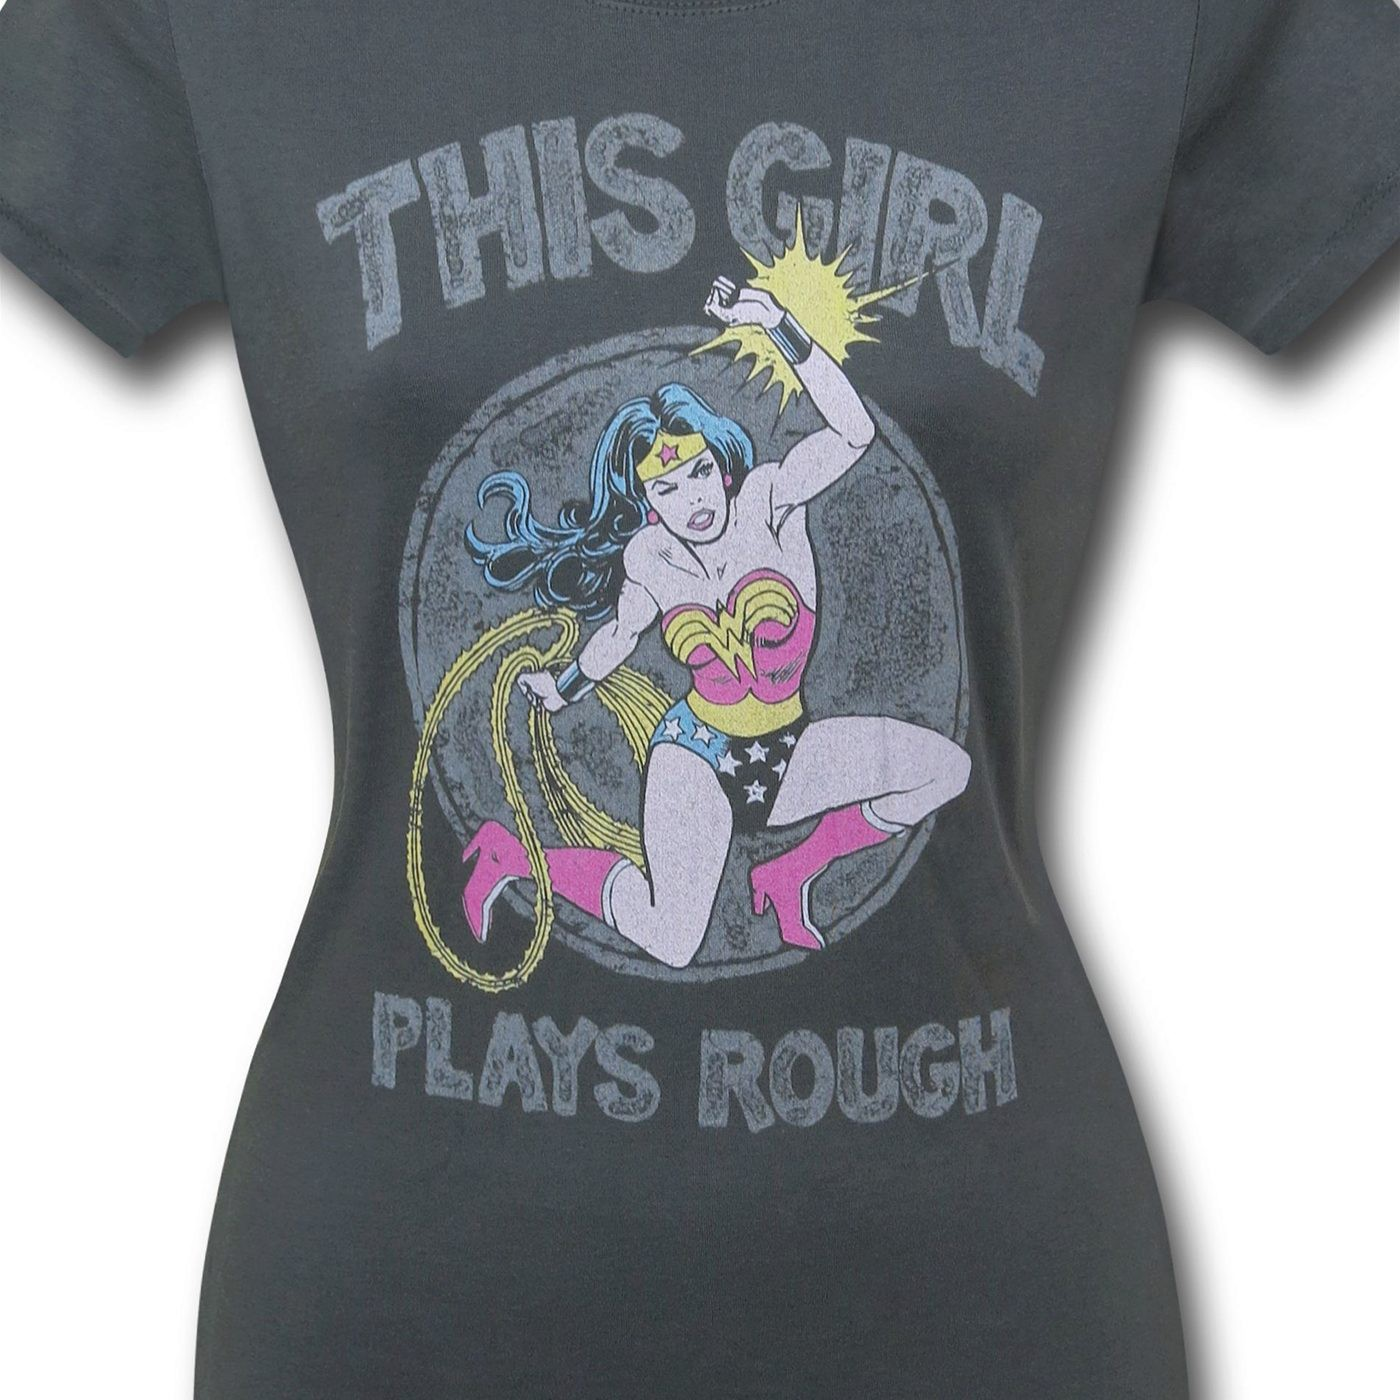 Wonder Woman Plays Rough Women's T-Shirt